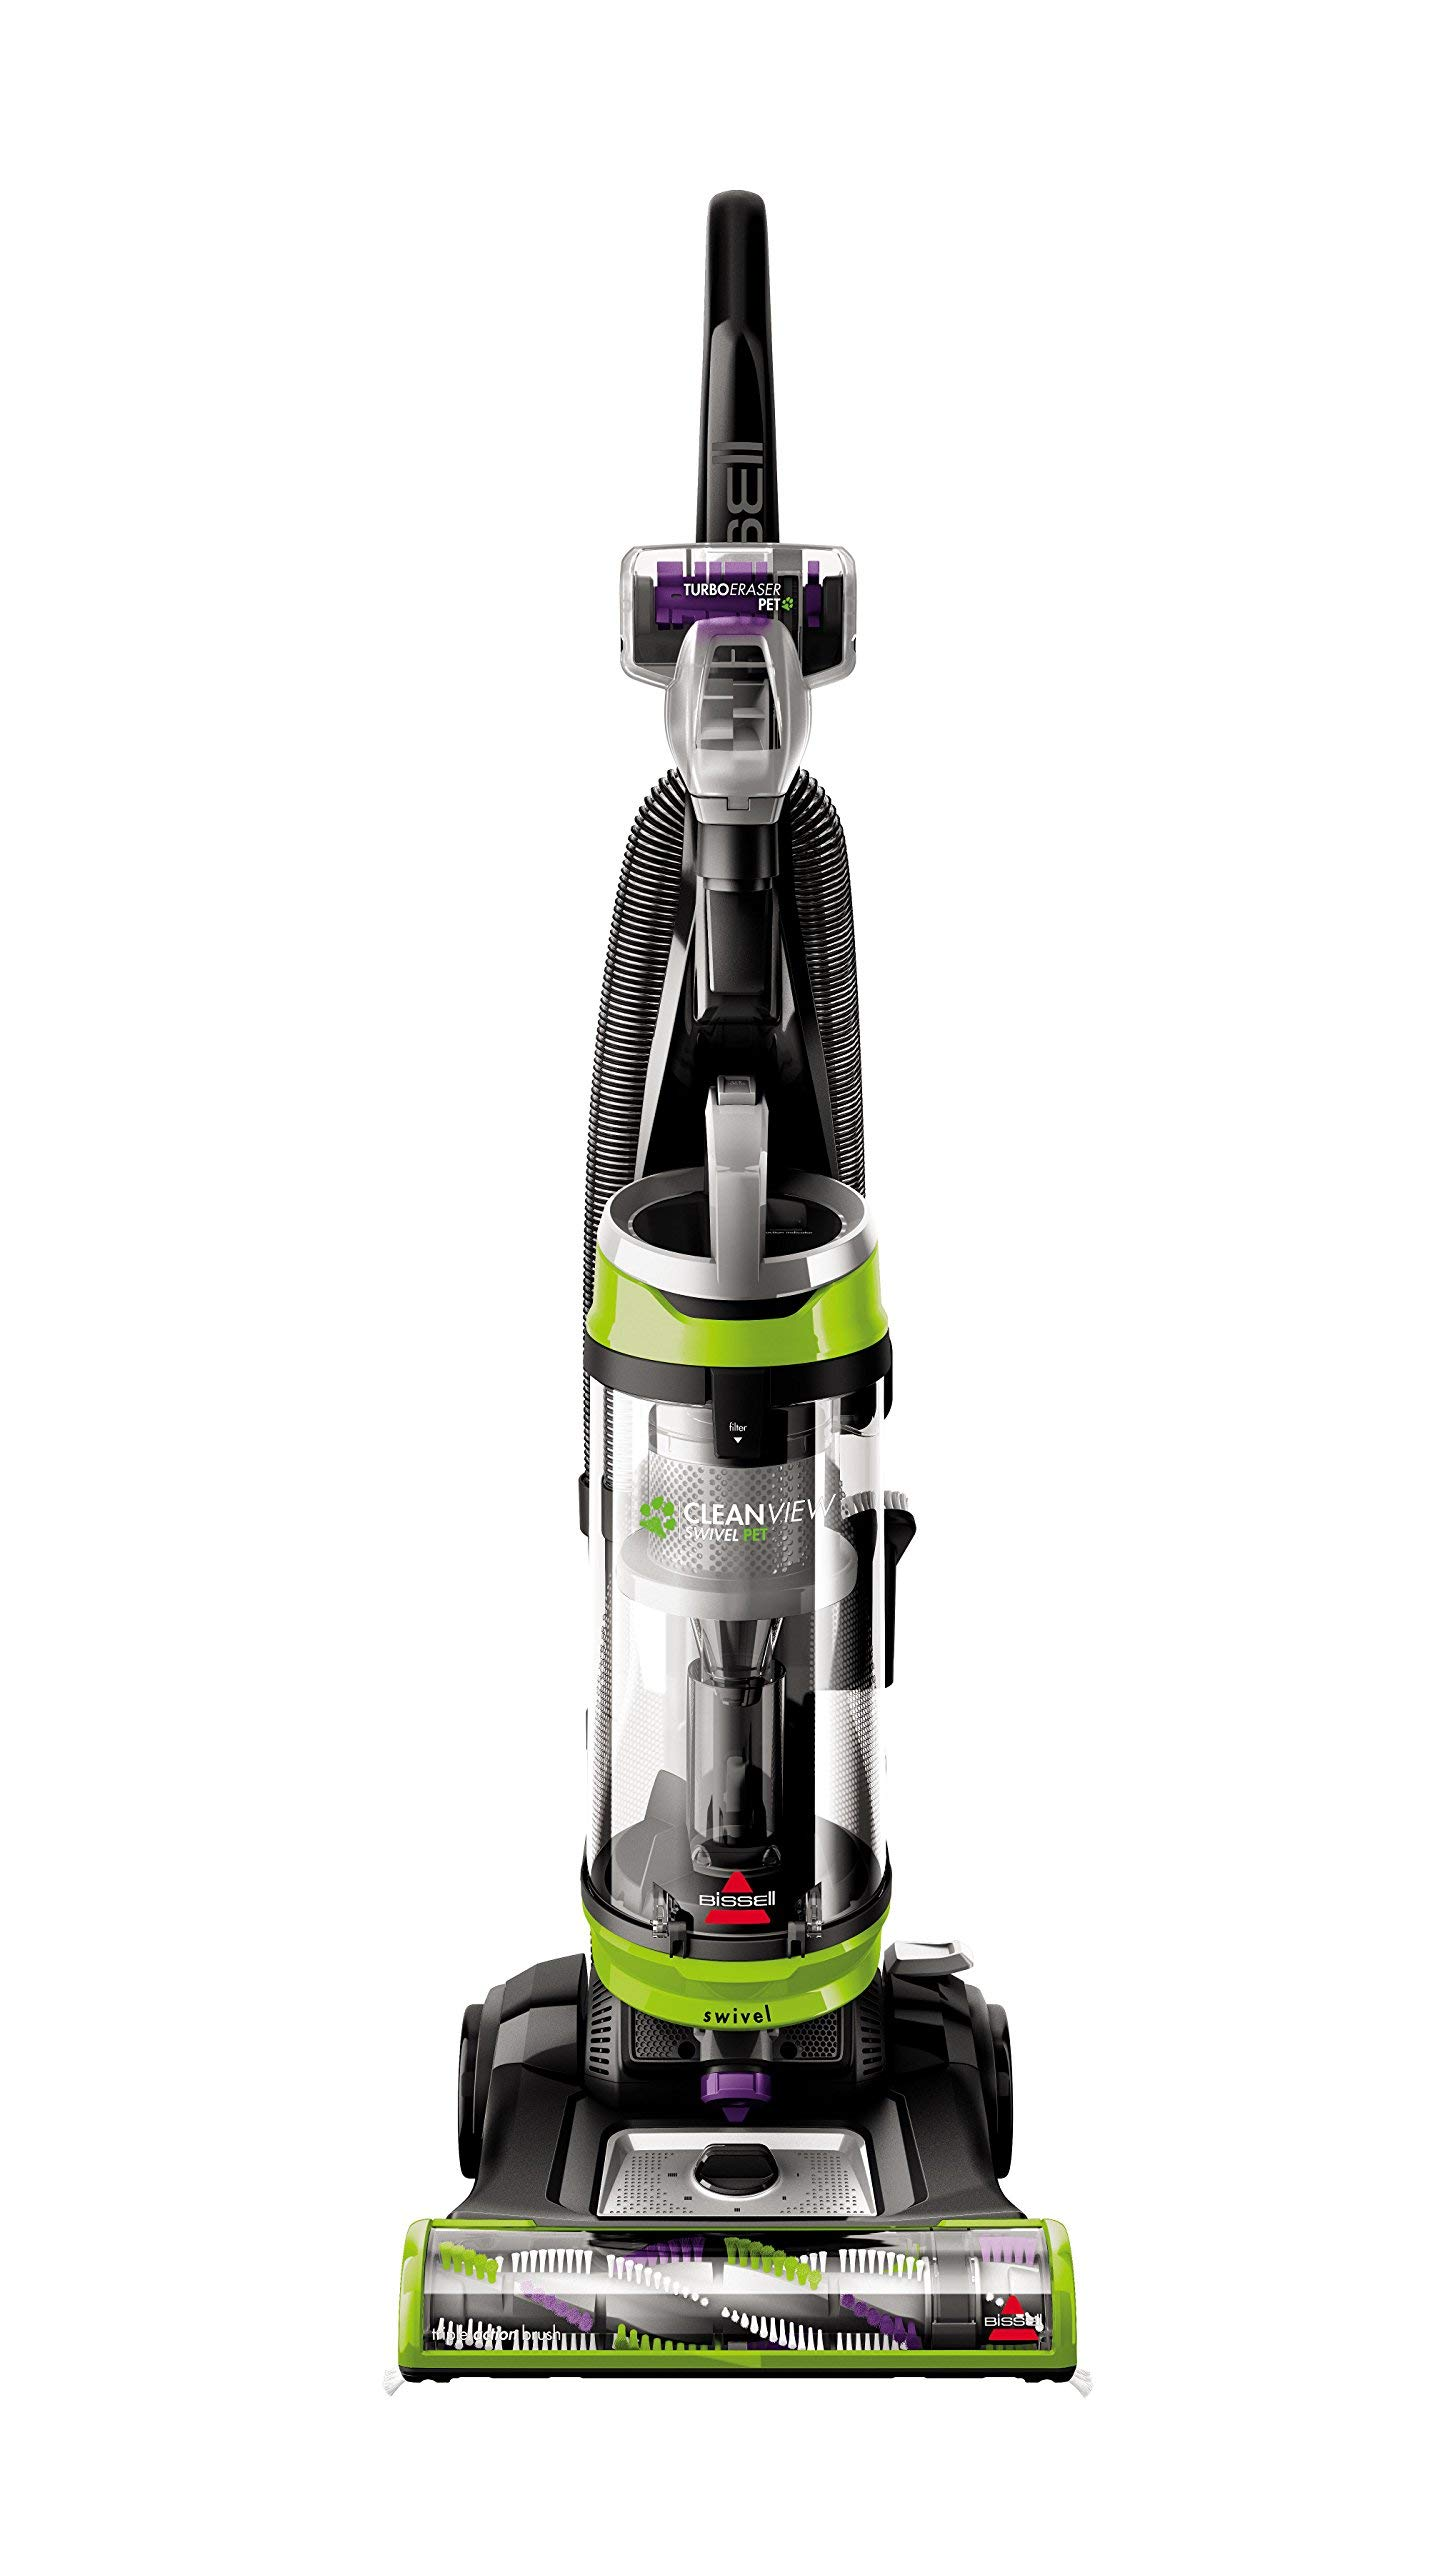 BISSELL Cleanview Swivel Pet Upright Bagless Vacuum Cleaner, Green, 2252 (Renewed) by Bissell